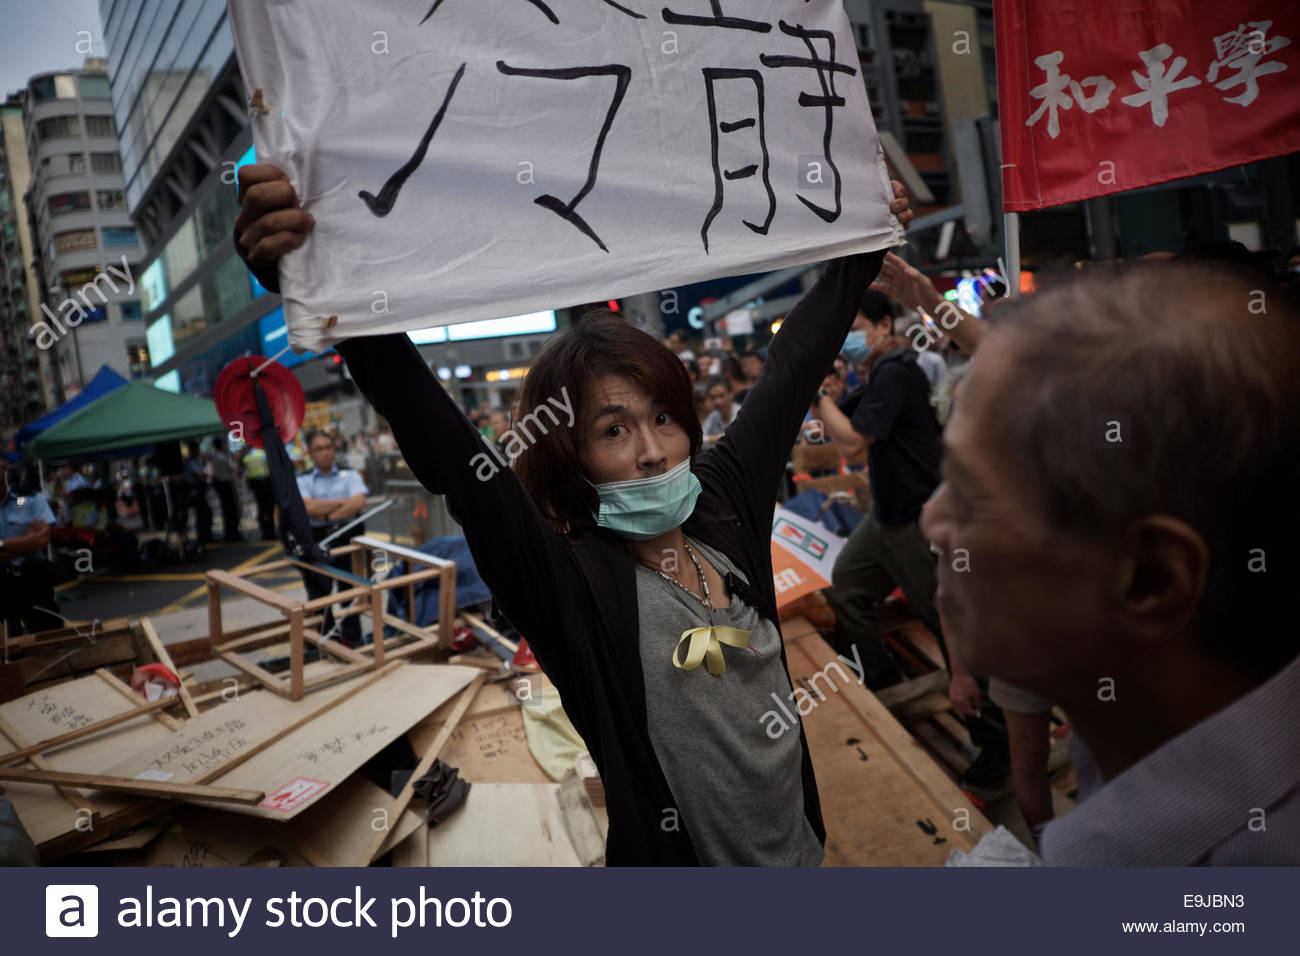 A protester at the barricades in Mong Kok. - Stock Image